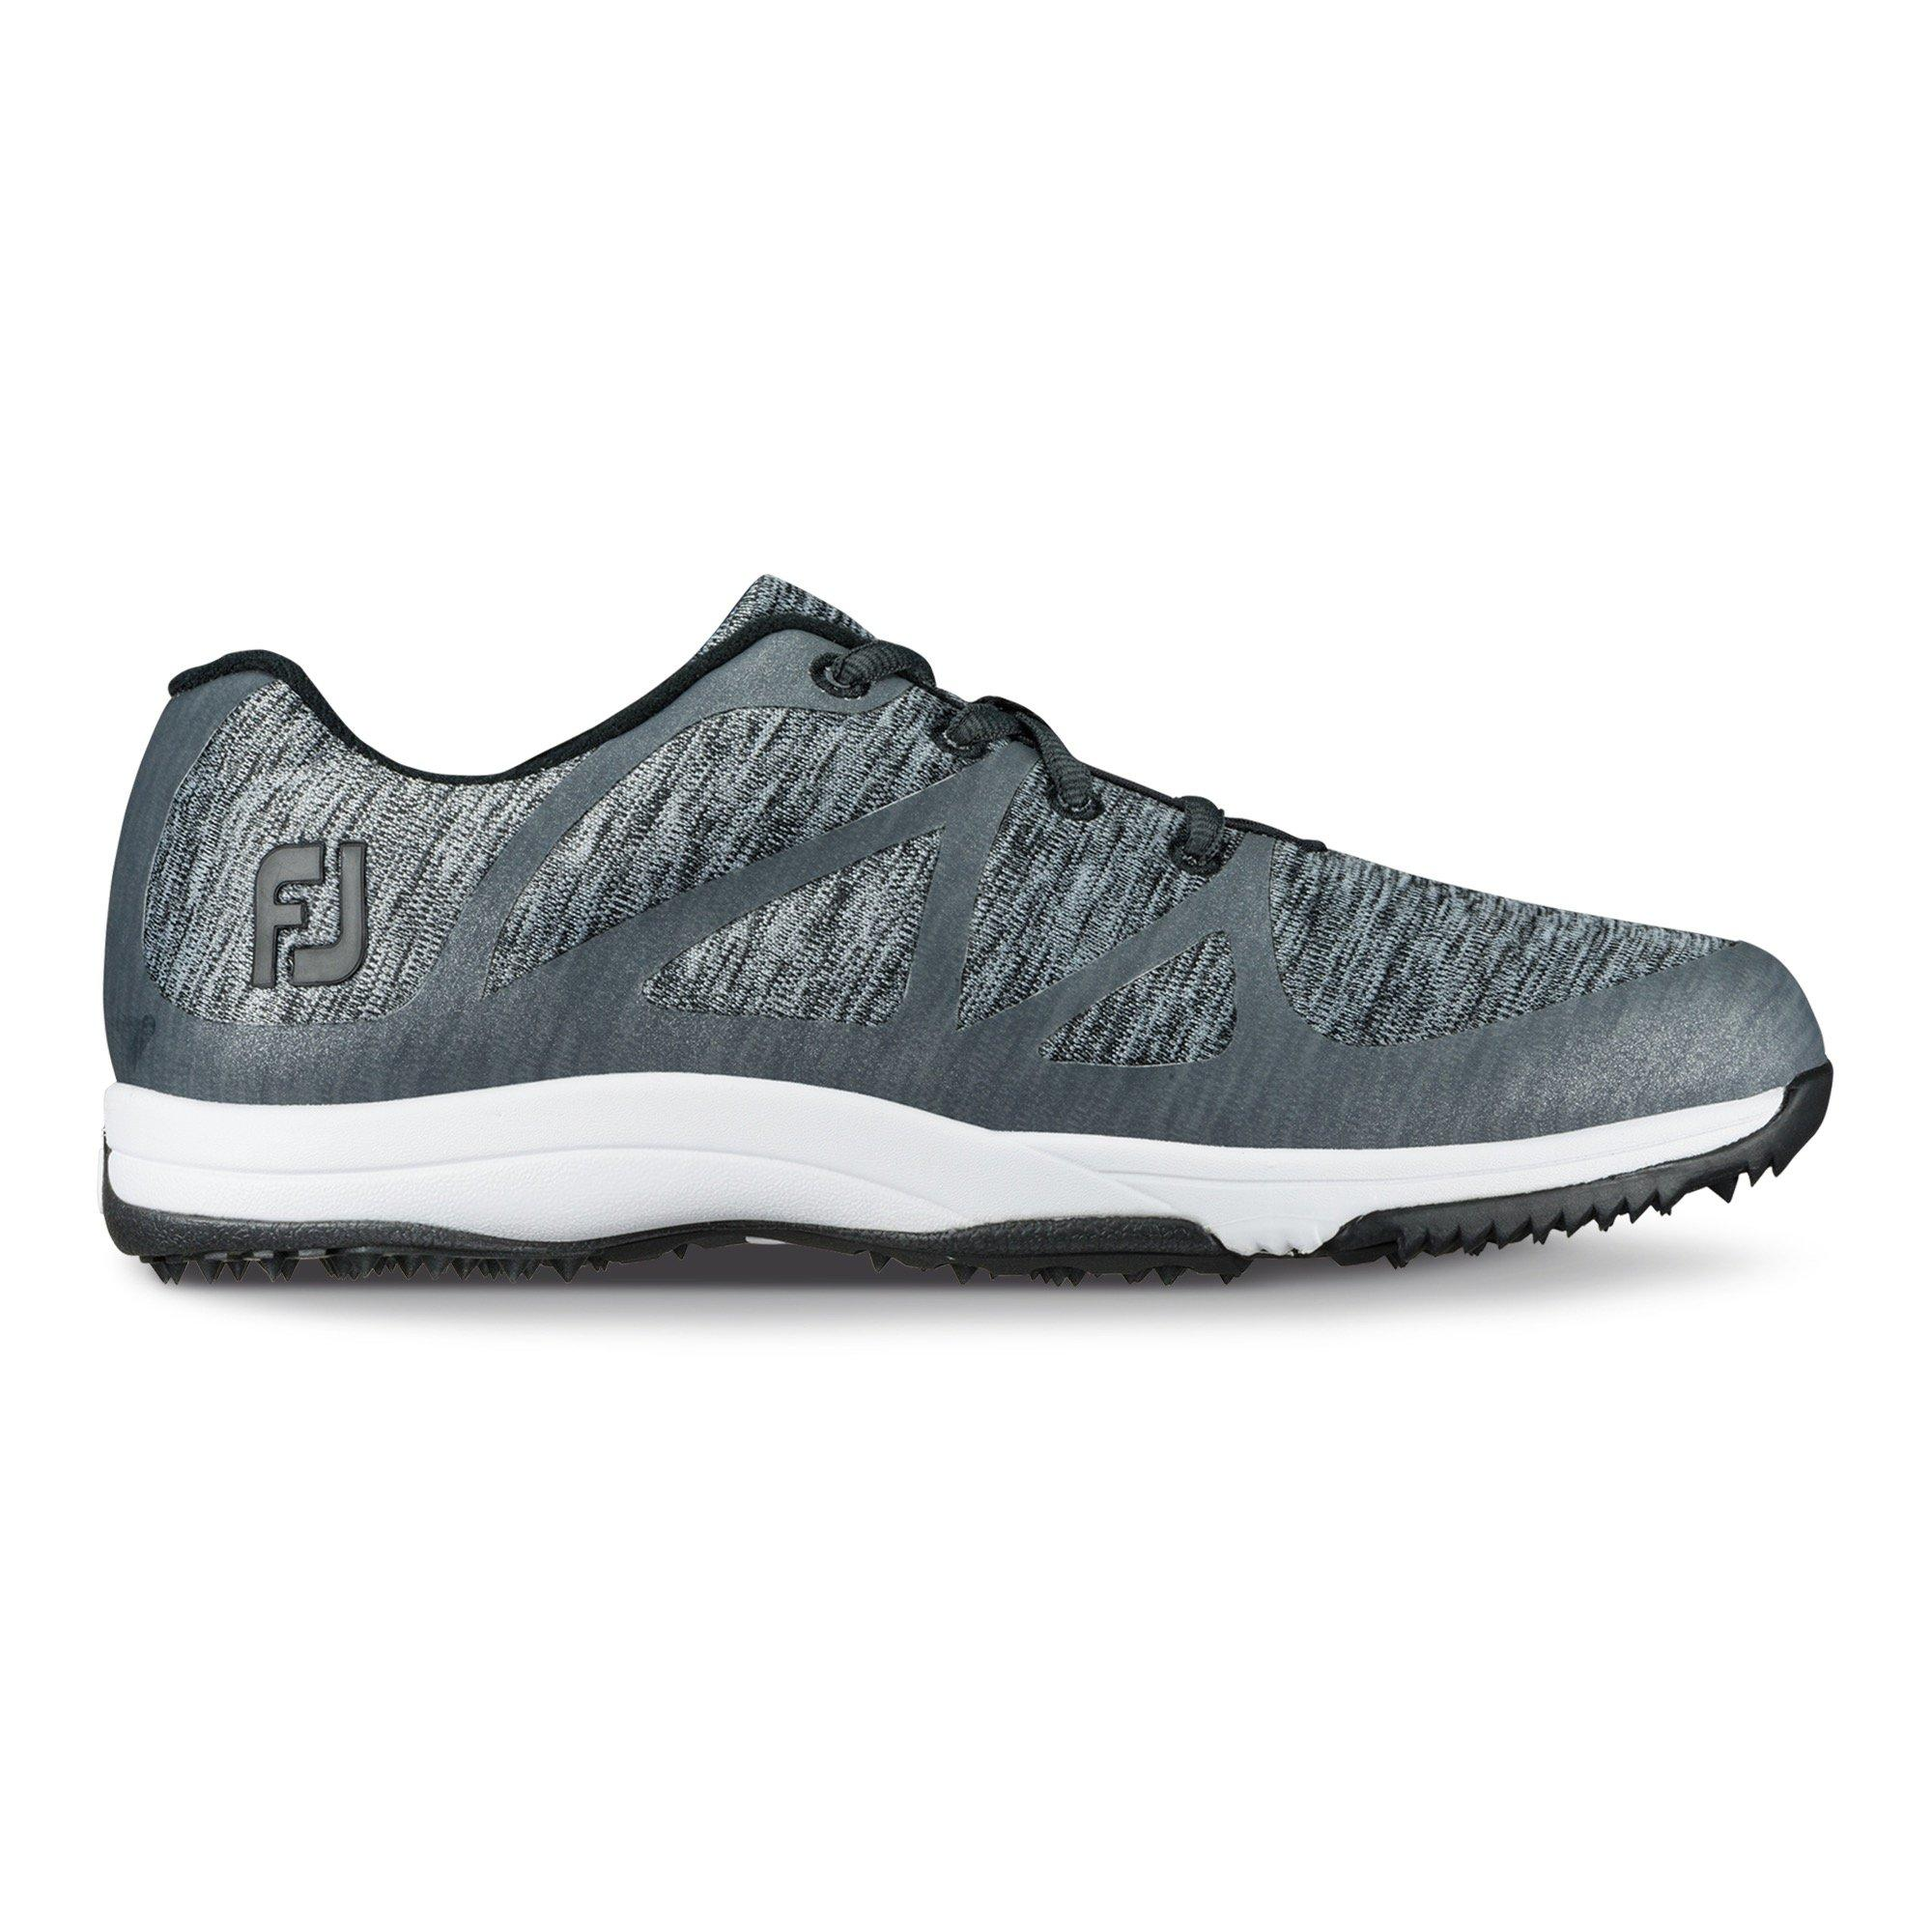 Women's FJ Leisure Spikeless Golf Shoe - DKGRY